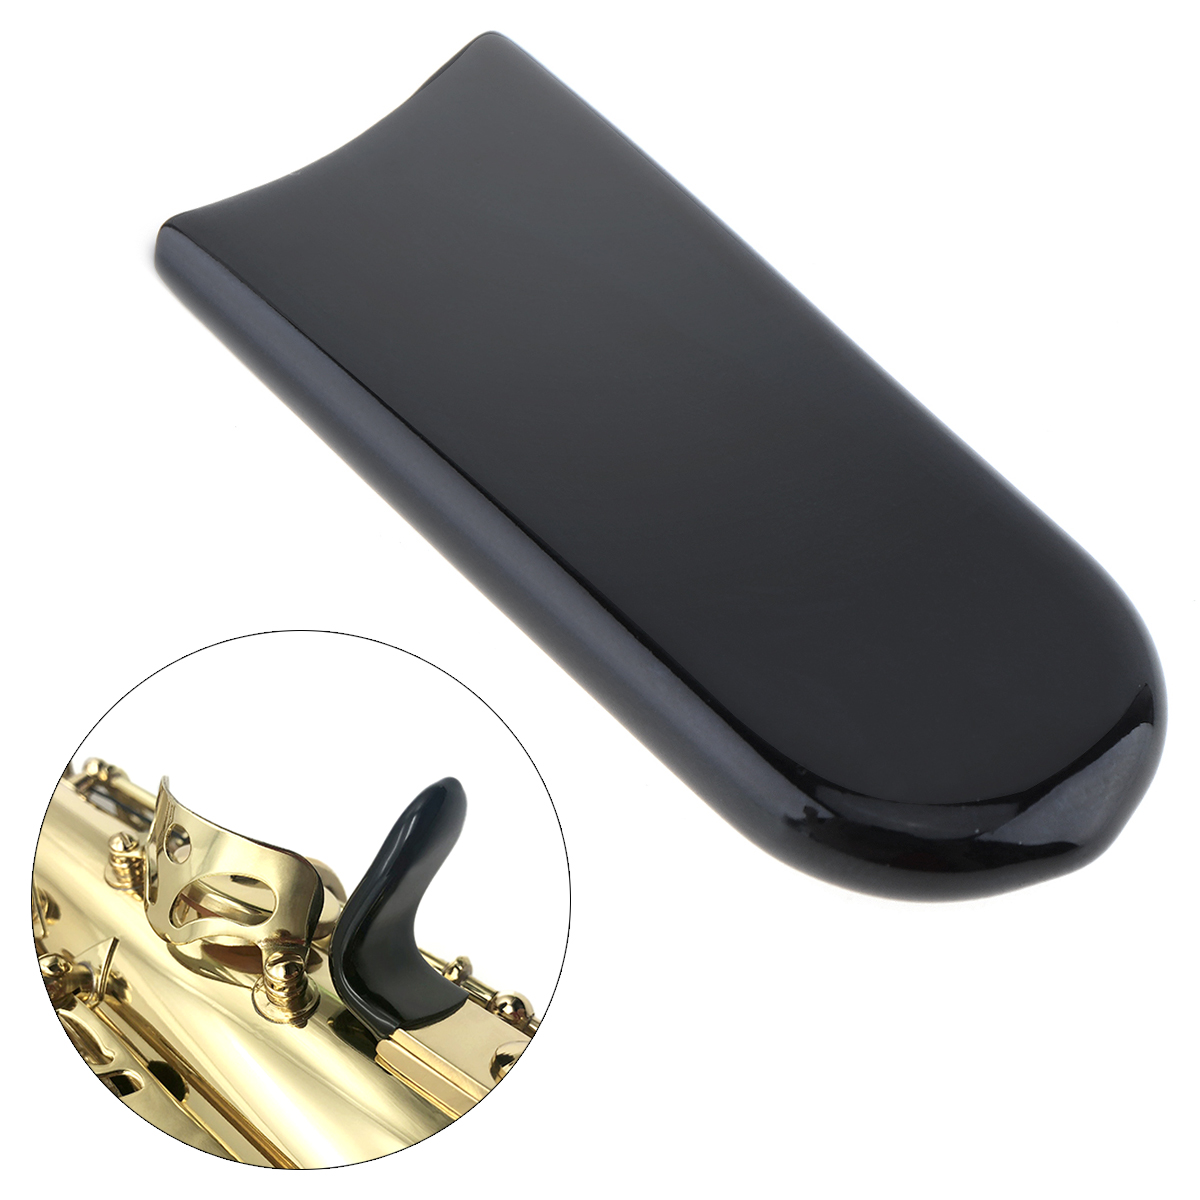 Rubber Saxophone Black Thumb Rest Saver Cushion Pad Finger Protector Comfortable For Alto Tenor Soprano Saxophones